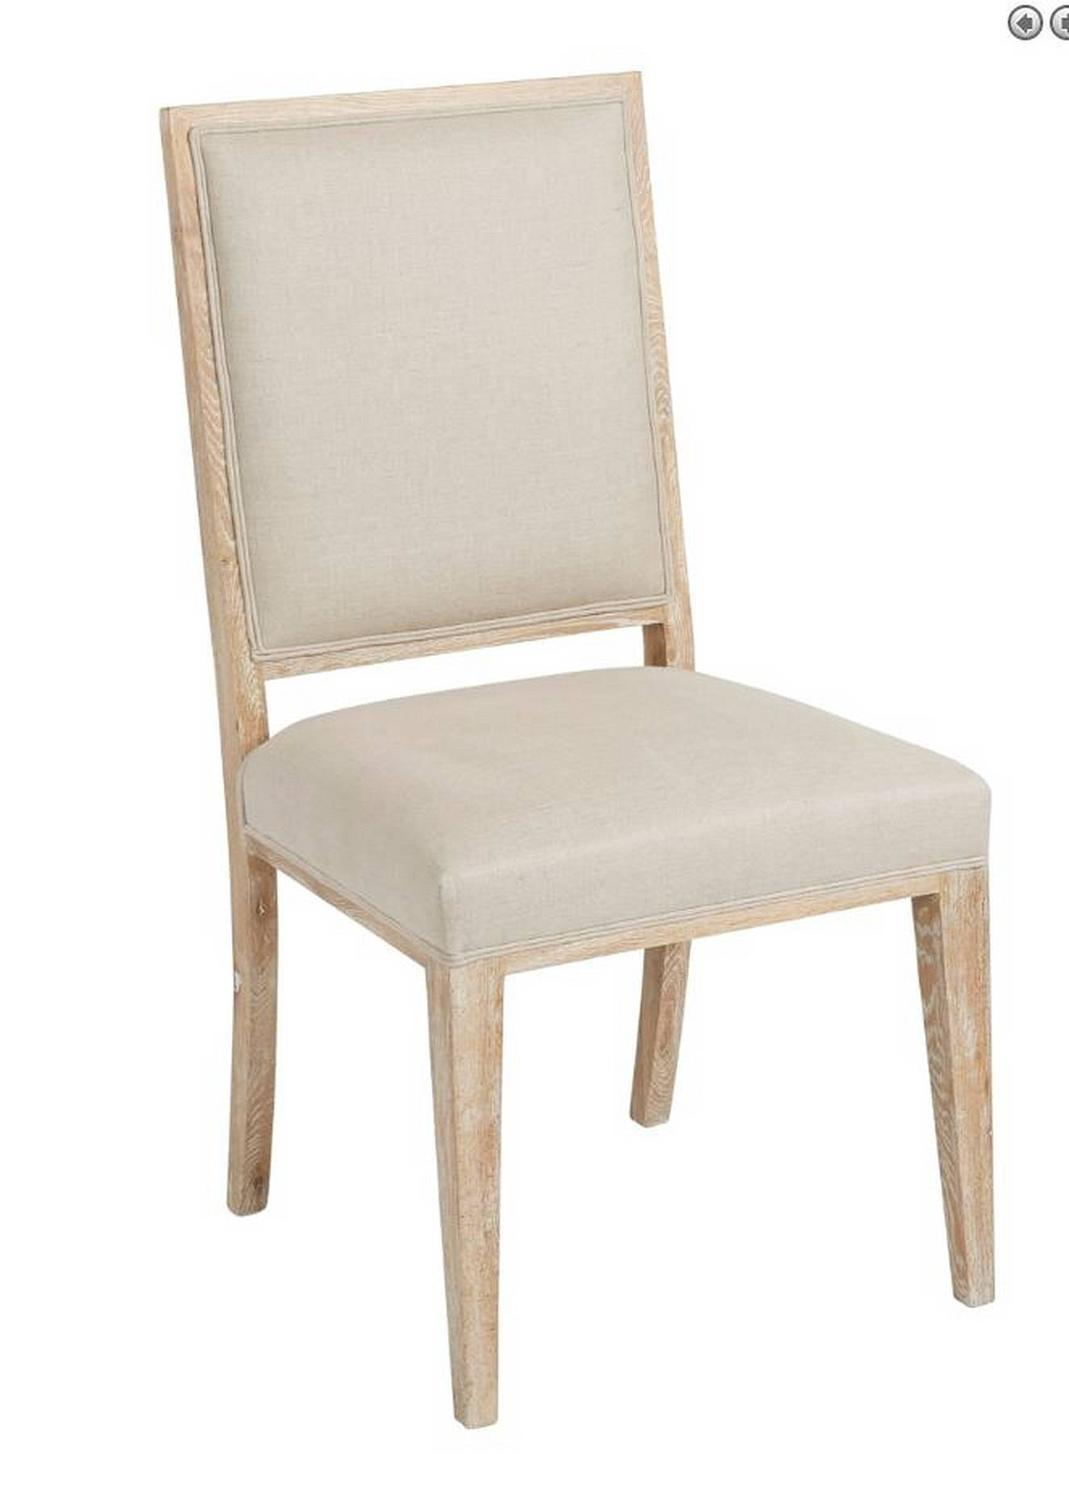 White Upholstered Chair Upholstered White Wash Dining Chair For Sale At 1stdibs